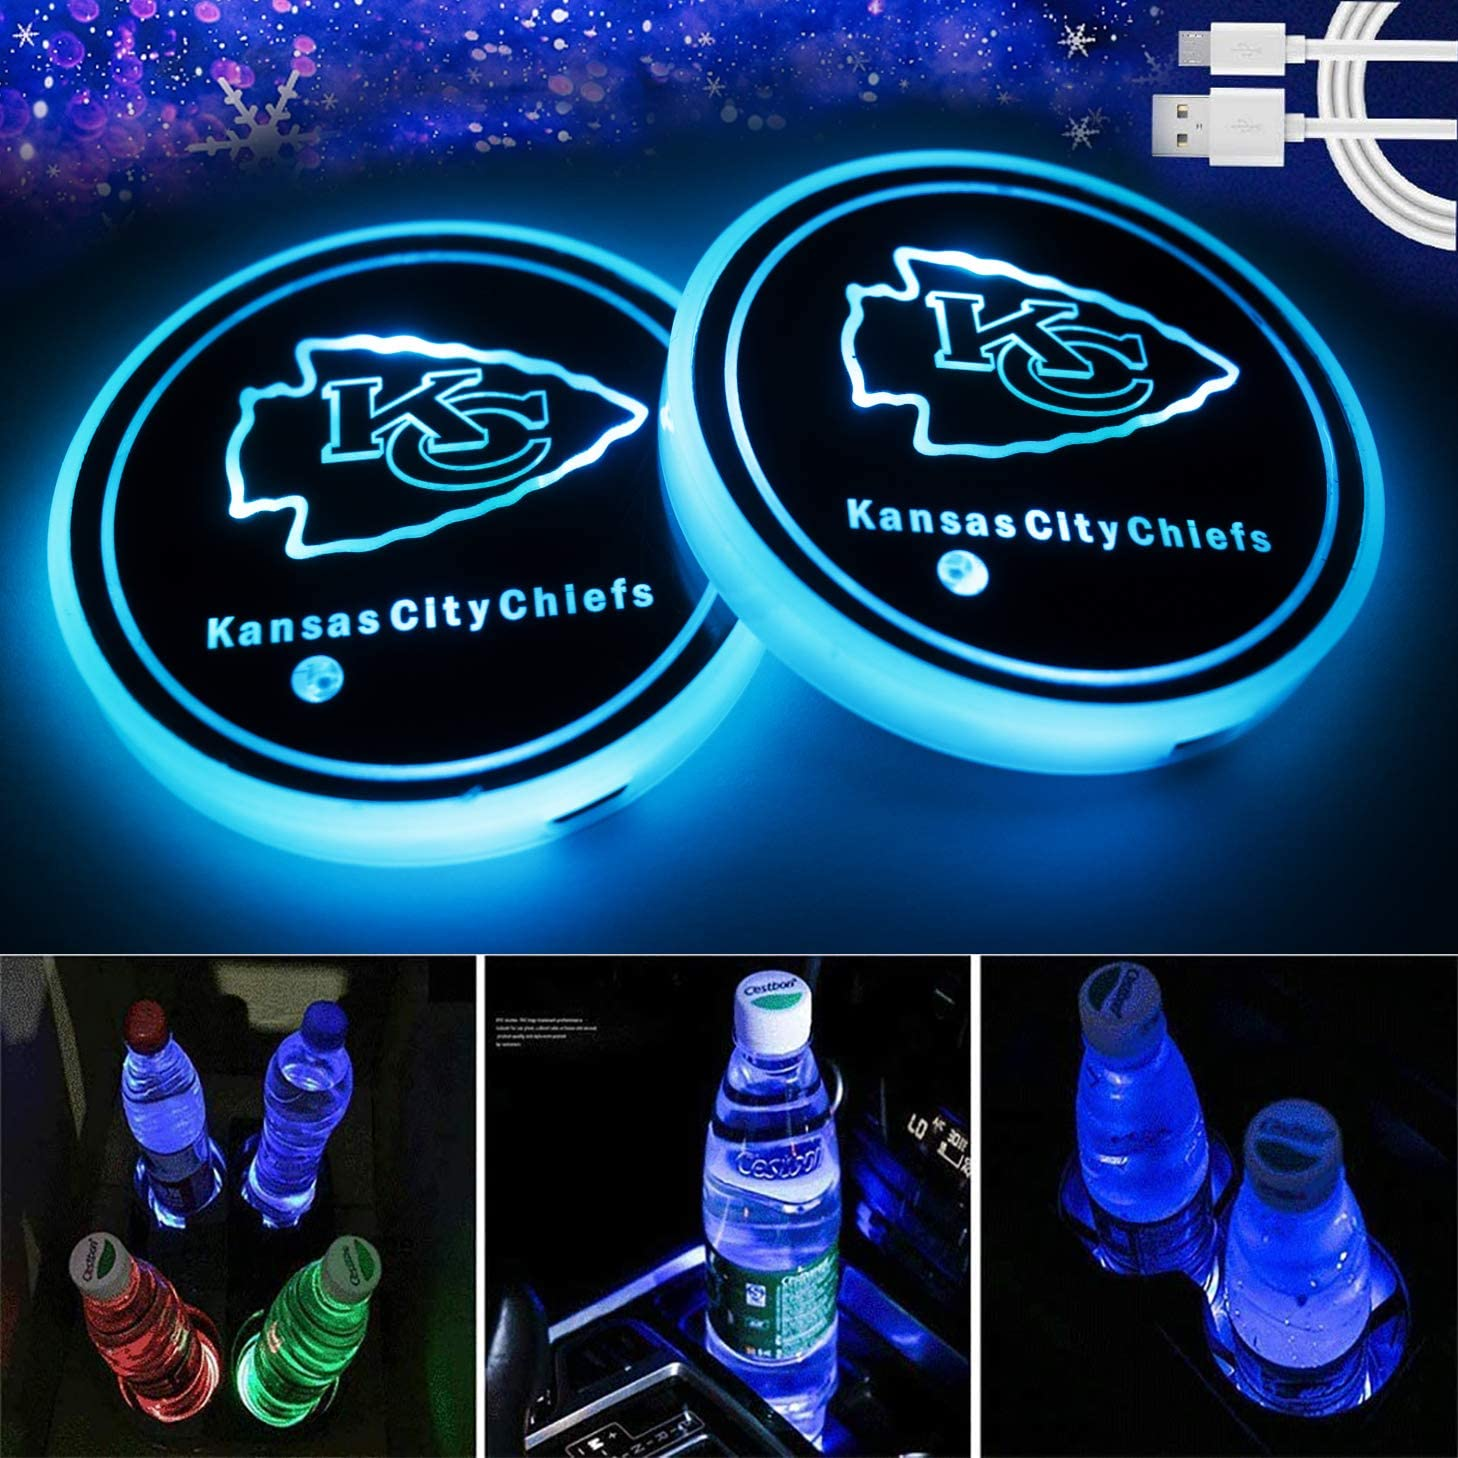 Topfans 2PCS Fit Kansas City Chiefs Car Cup Holder Lights,USB Charging Lights Up The Coaster,Changeable Color LED Interior Atmosphere Lamp (fit Chiefs)